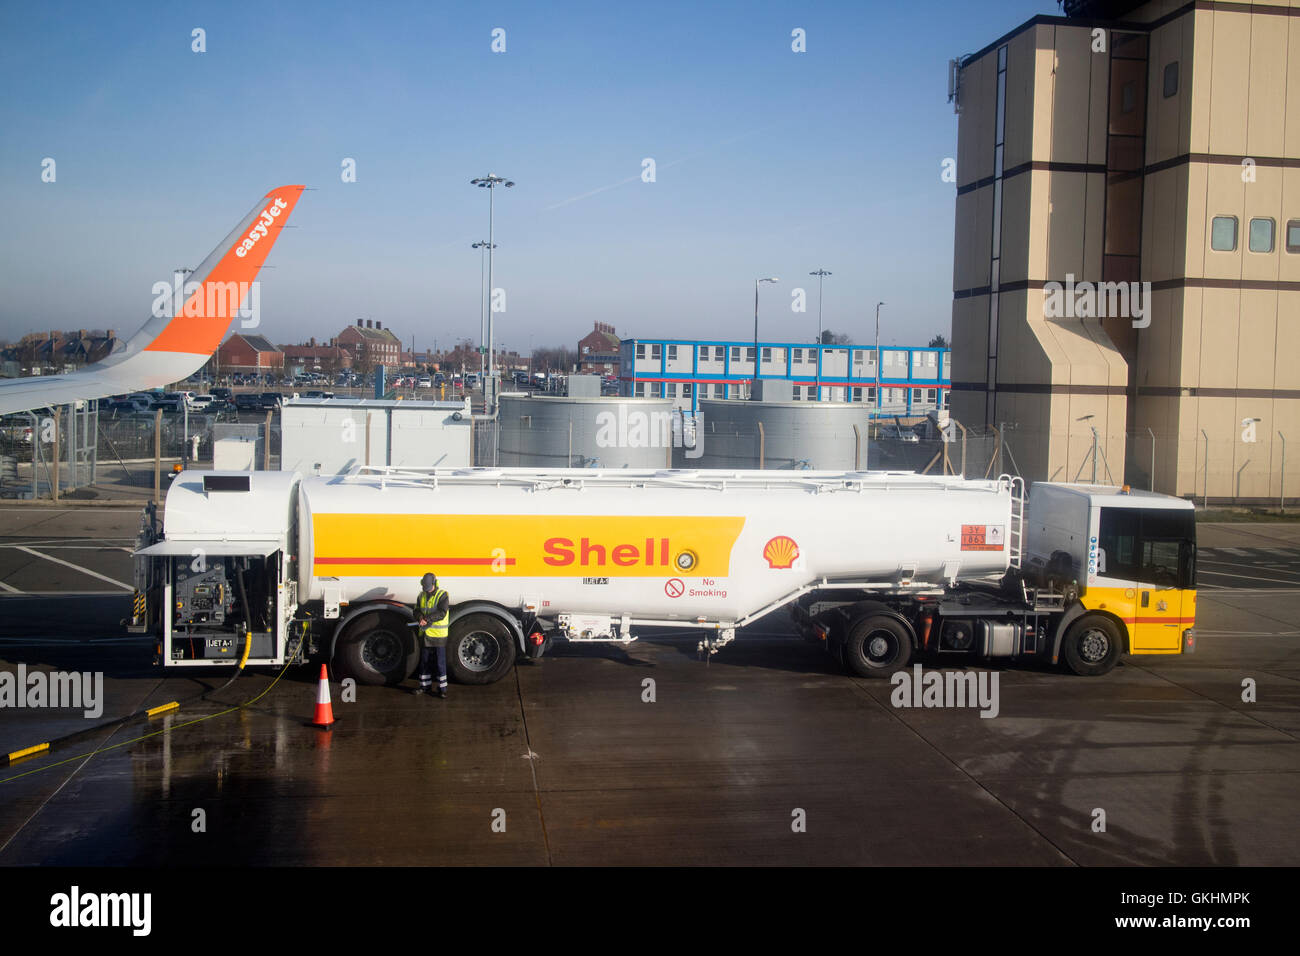 Shell oil jet-a1 refuelling tanker refuelling easyjet aircraft at liverpool john lennon airport in the uk - Stock Image